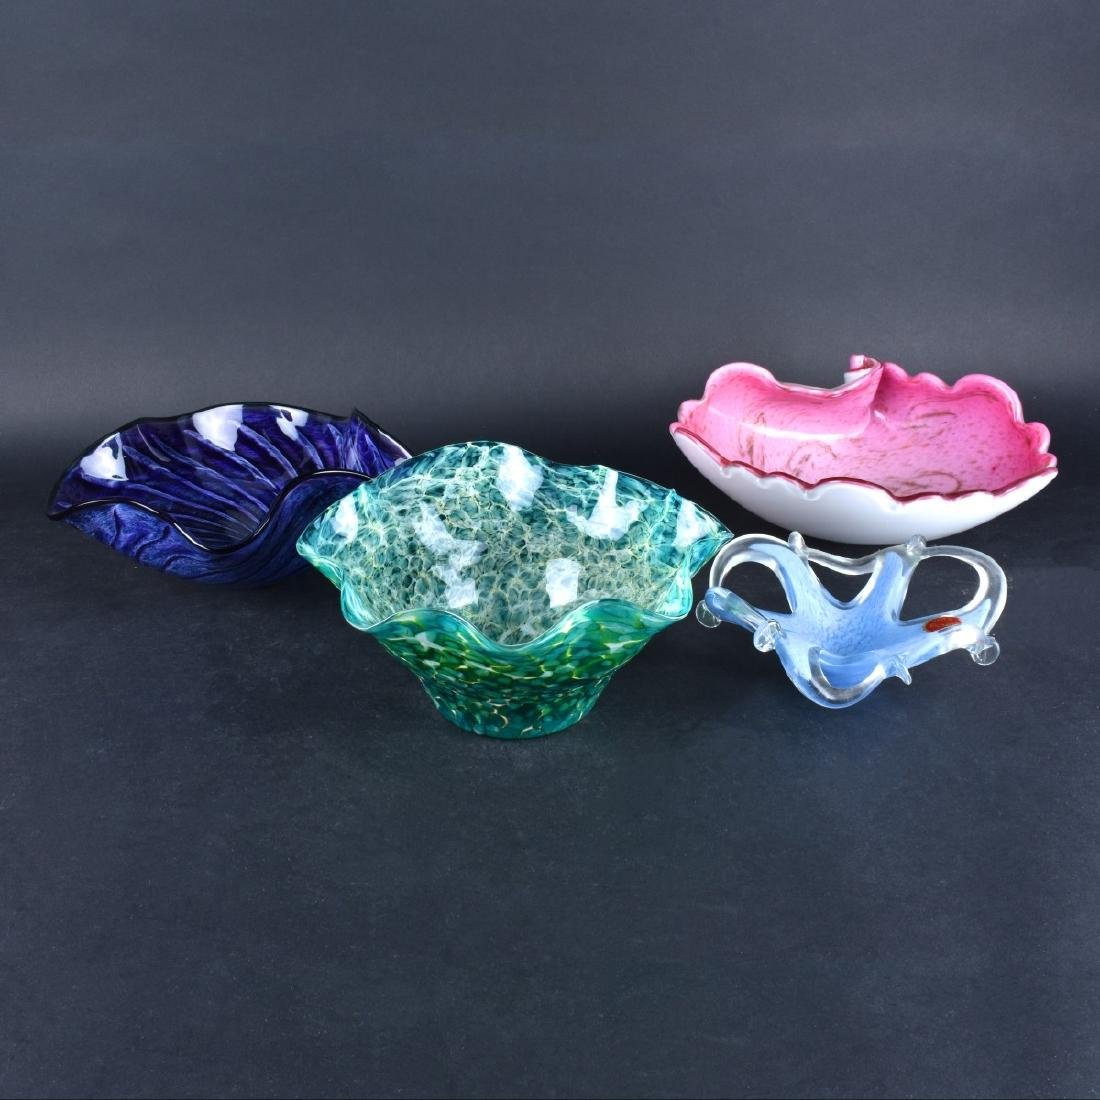 Four (4) Art Glass Bowls